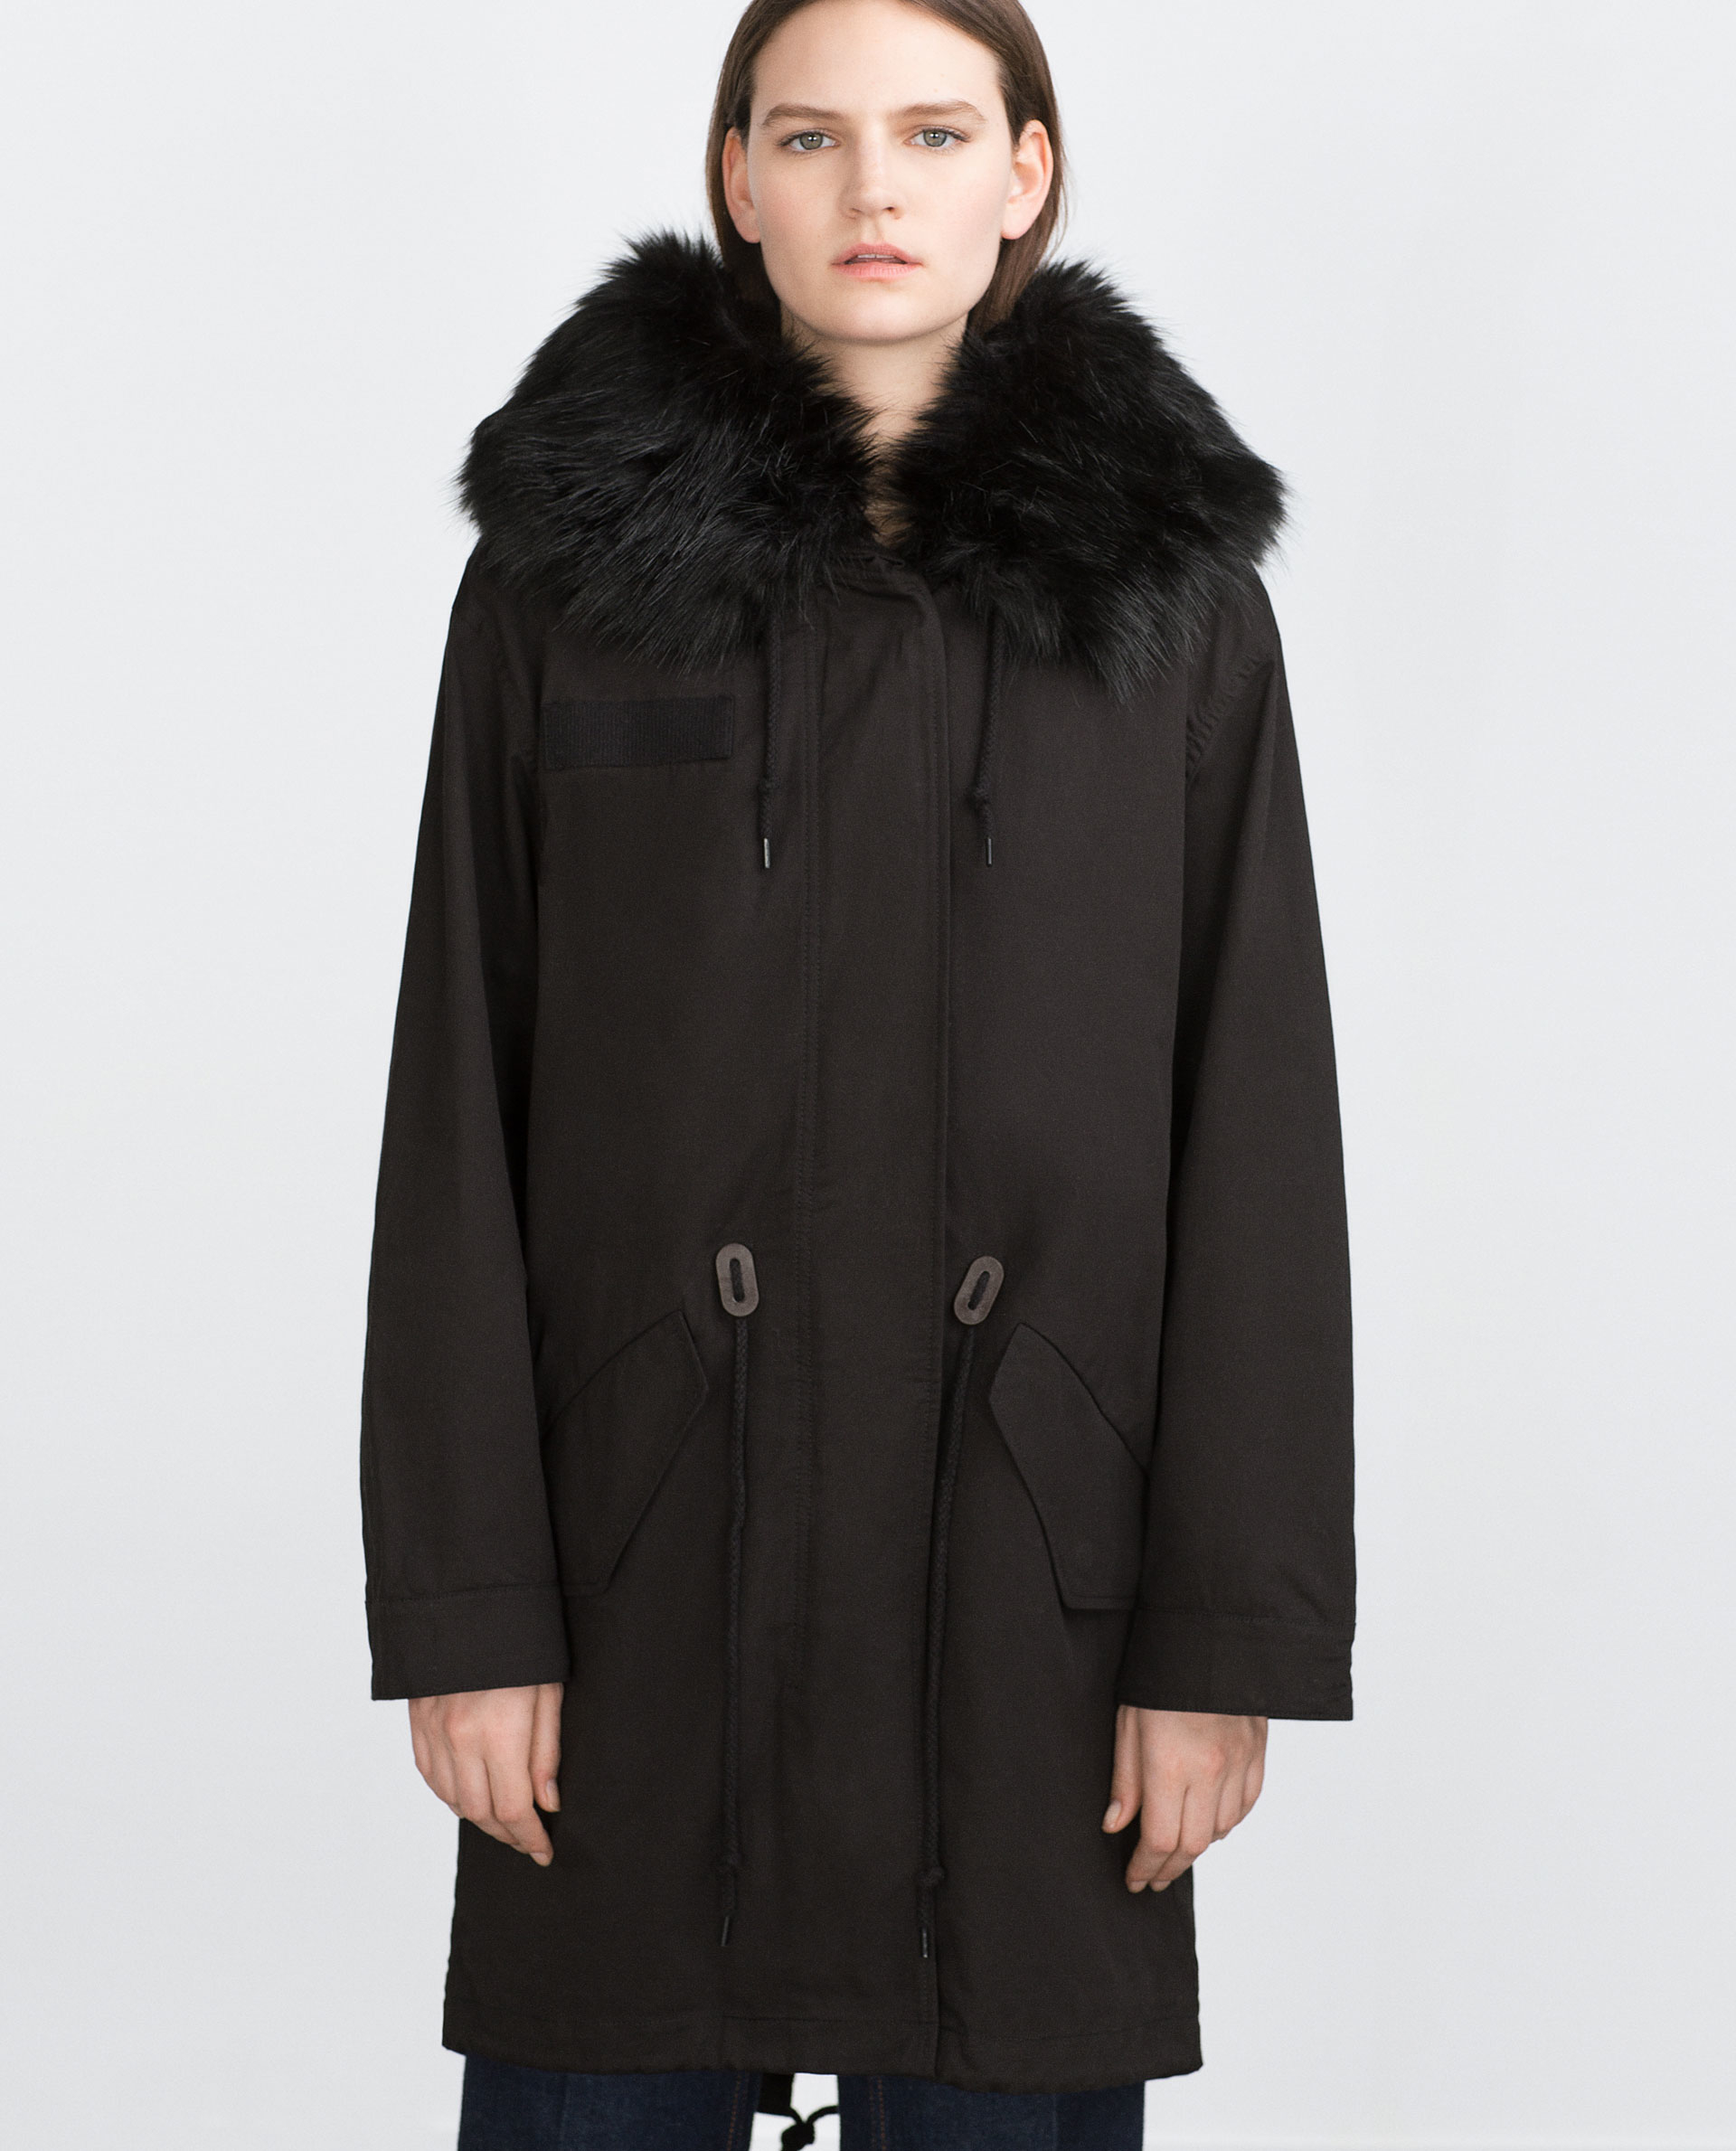 Zara Oversized Parka in Black | Lyst